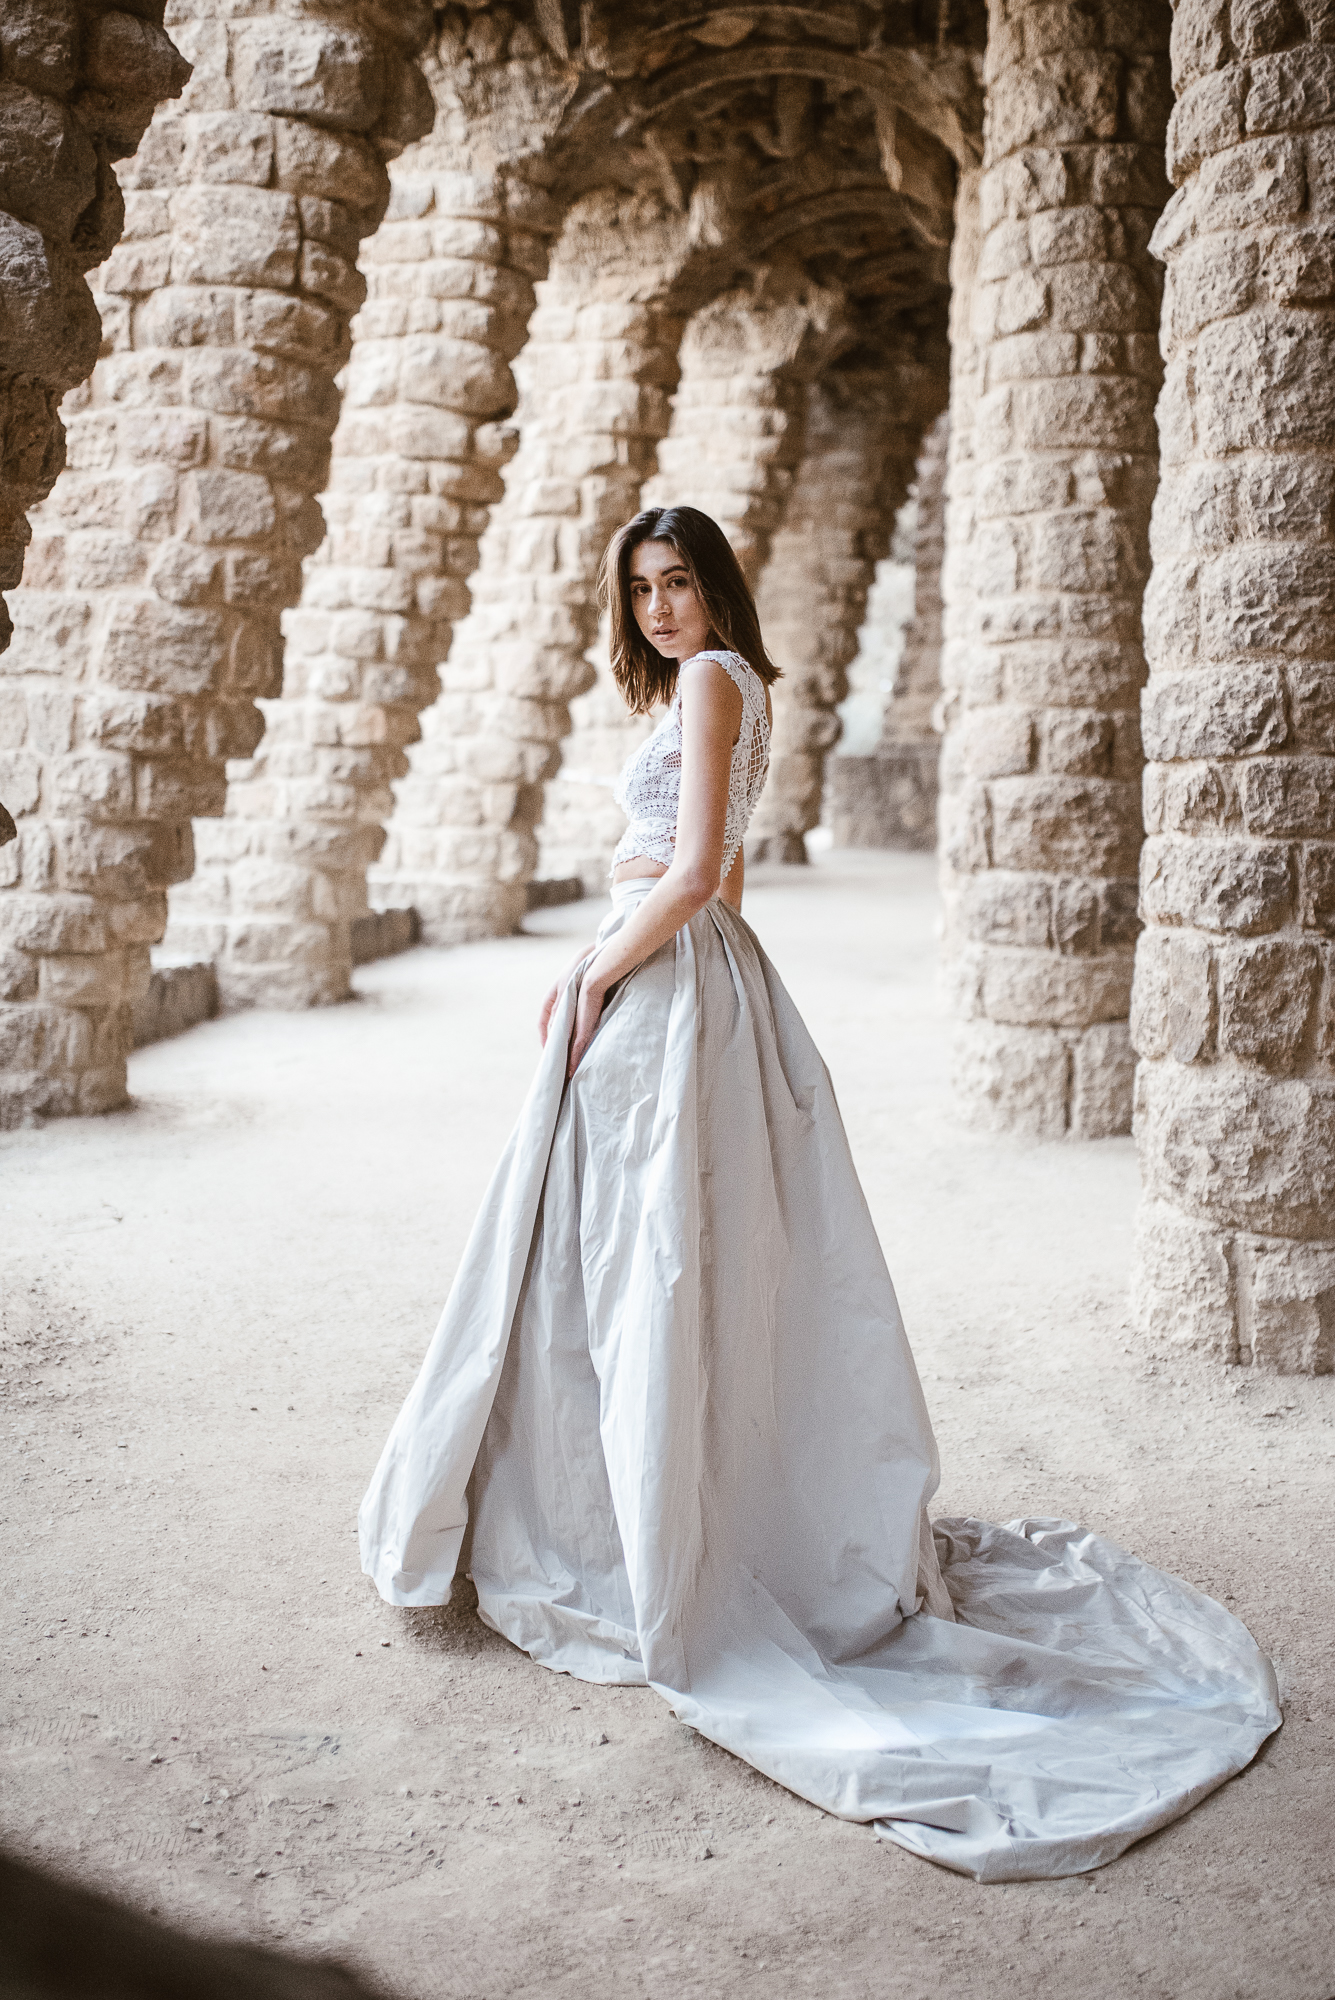 bohemian wedding dress inspiration from the land of Pronovias in Güell Park | The Wedding Fox